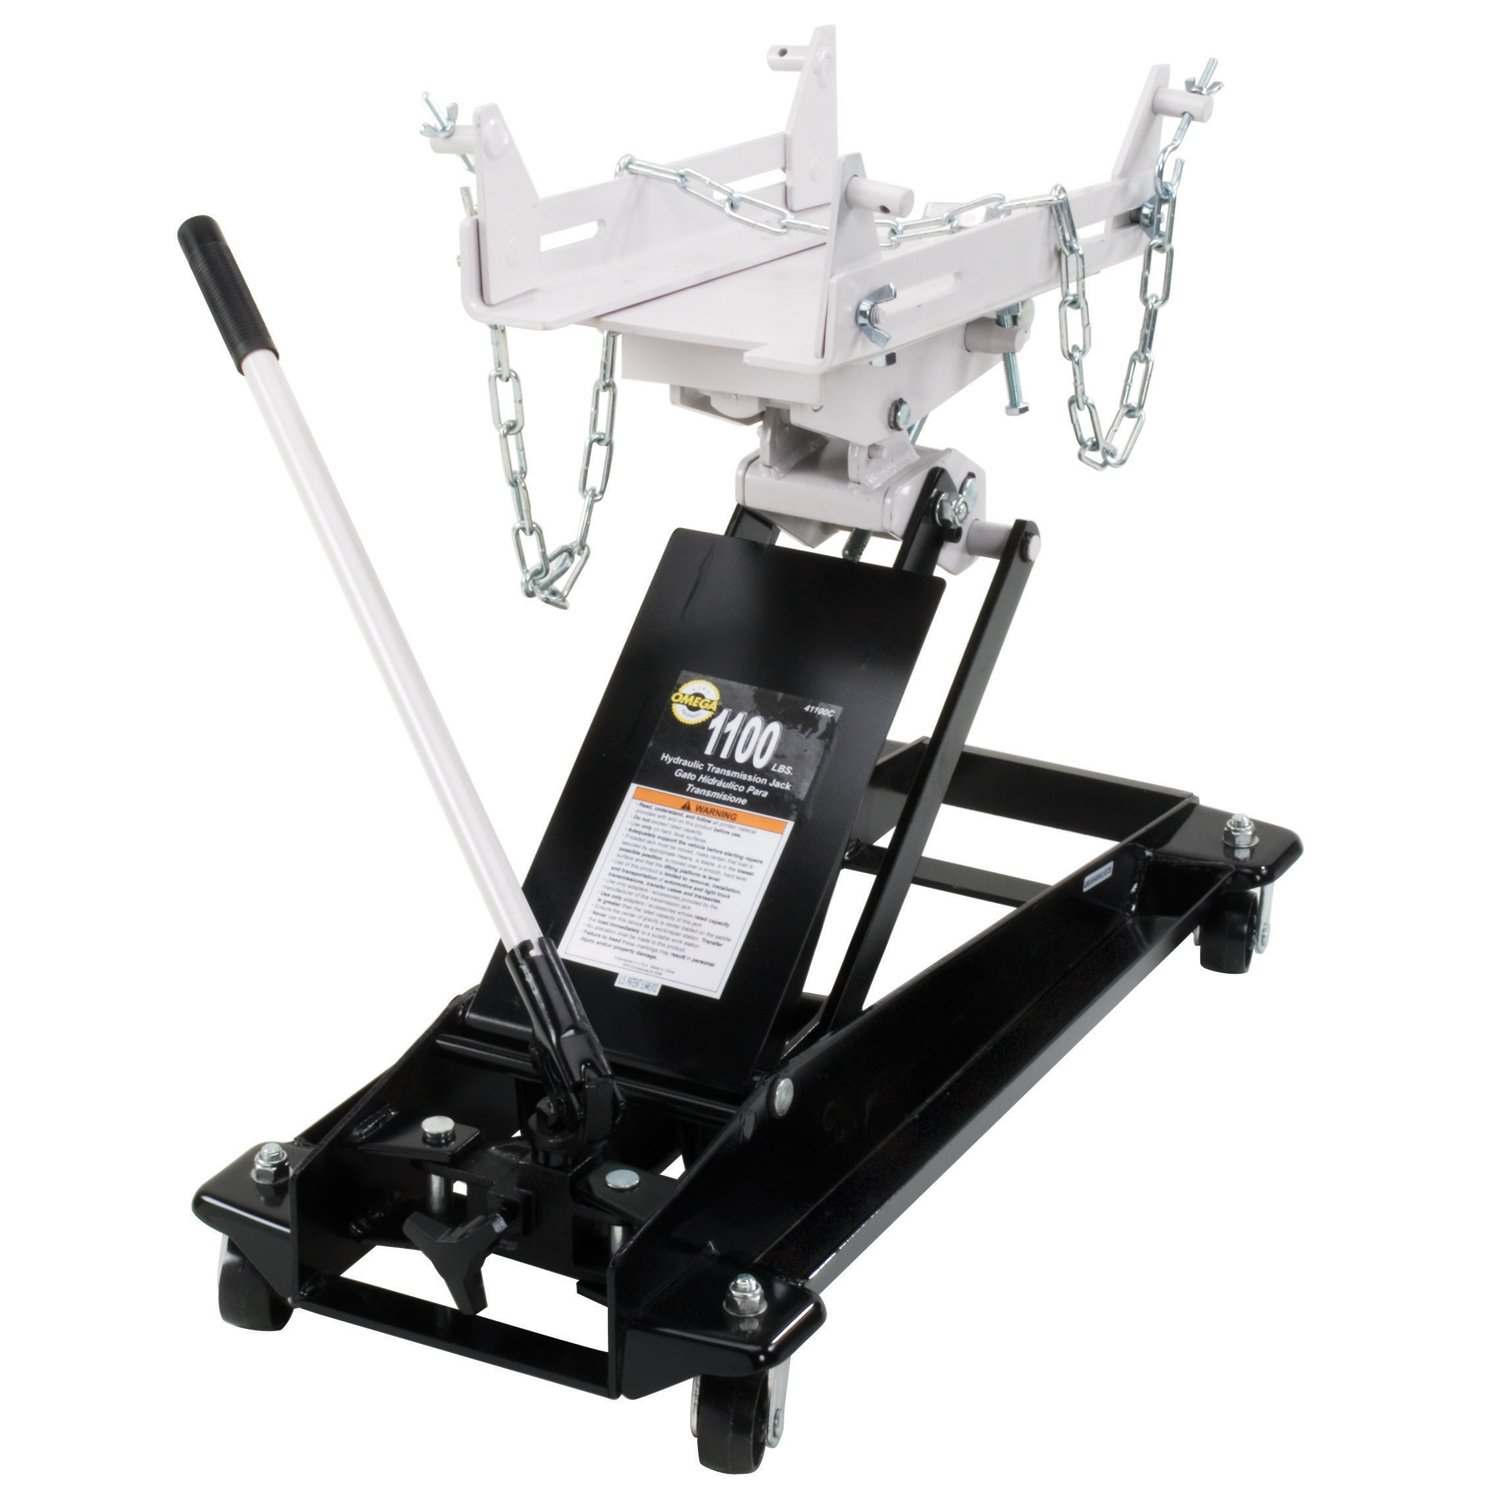 Amazon.com: Omega 41100C Black Low Profile Hydraulic Transmission Jack - 1100 lb. Capacity: Automotive